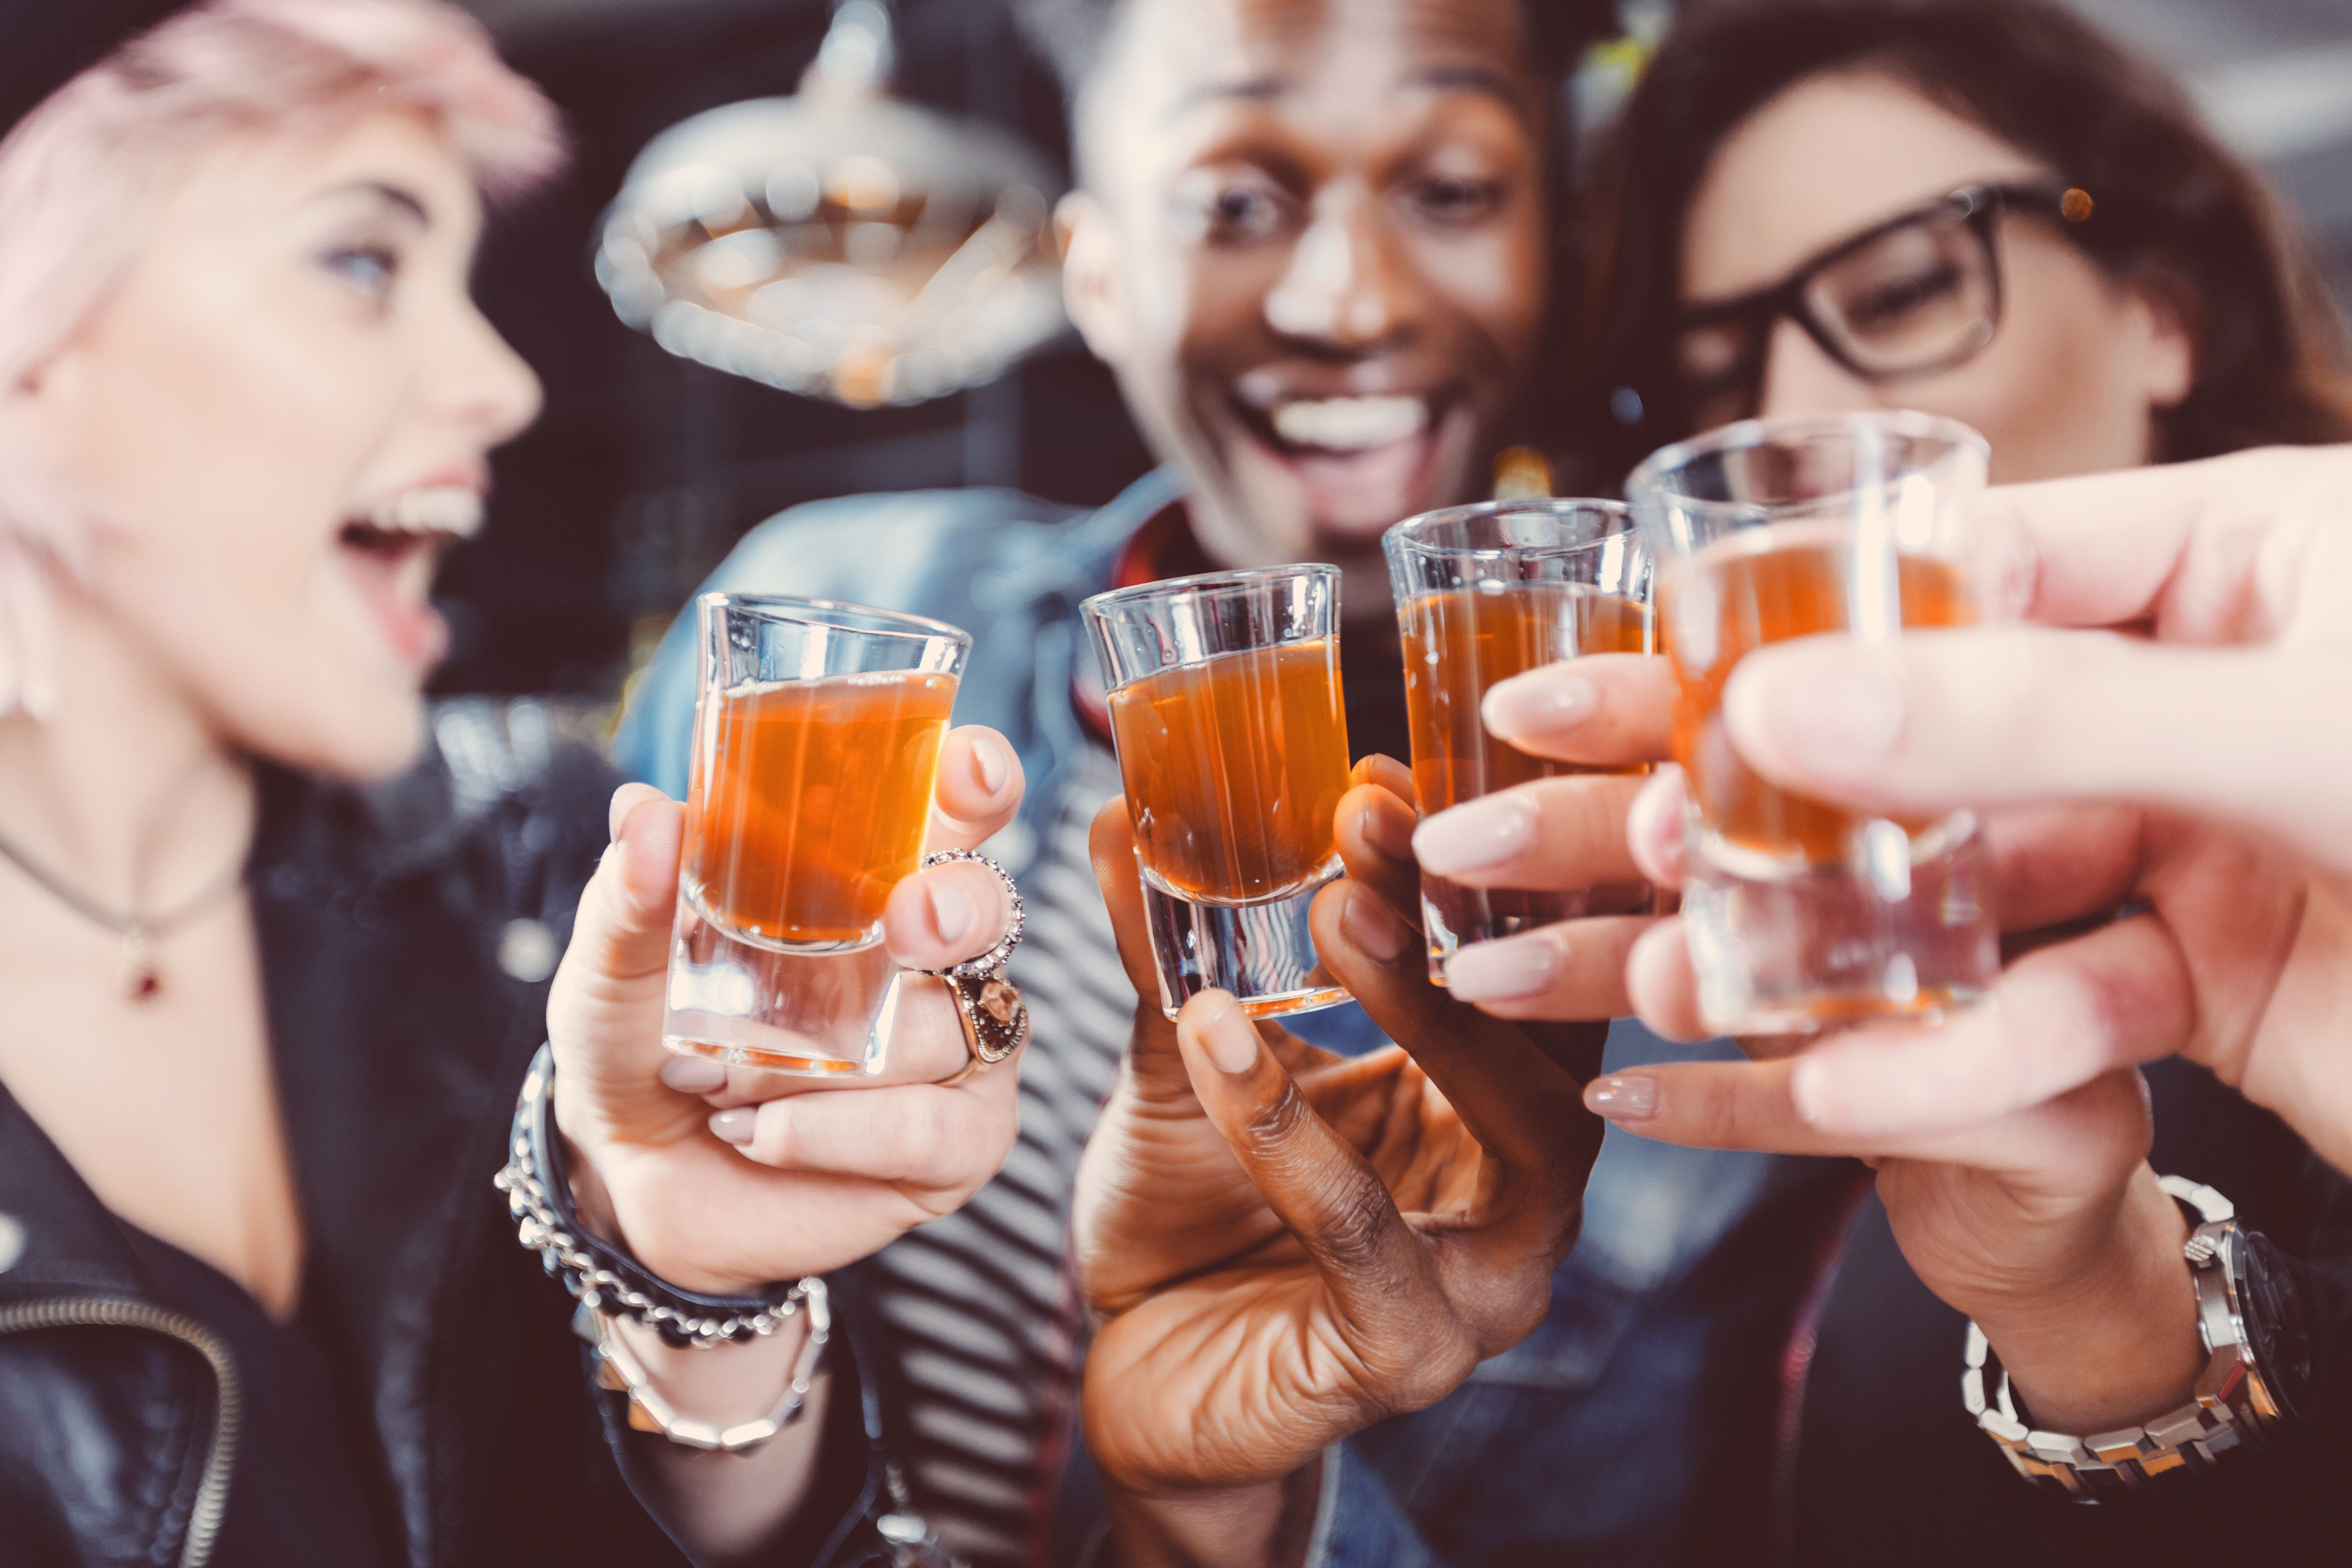 Multi ethnic group of happy friends - caucasian and afro american - drinking shots in the pub. Focus on hands and shot glasses.